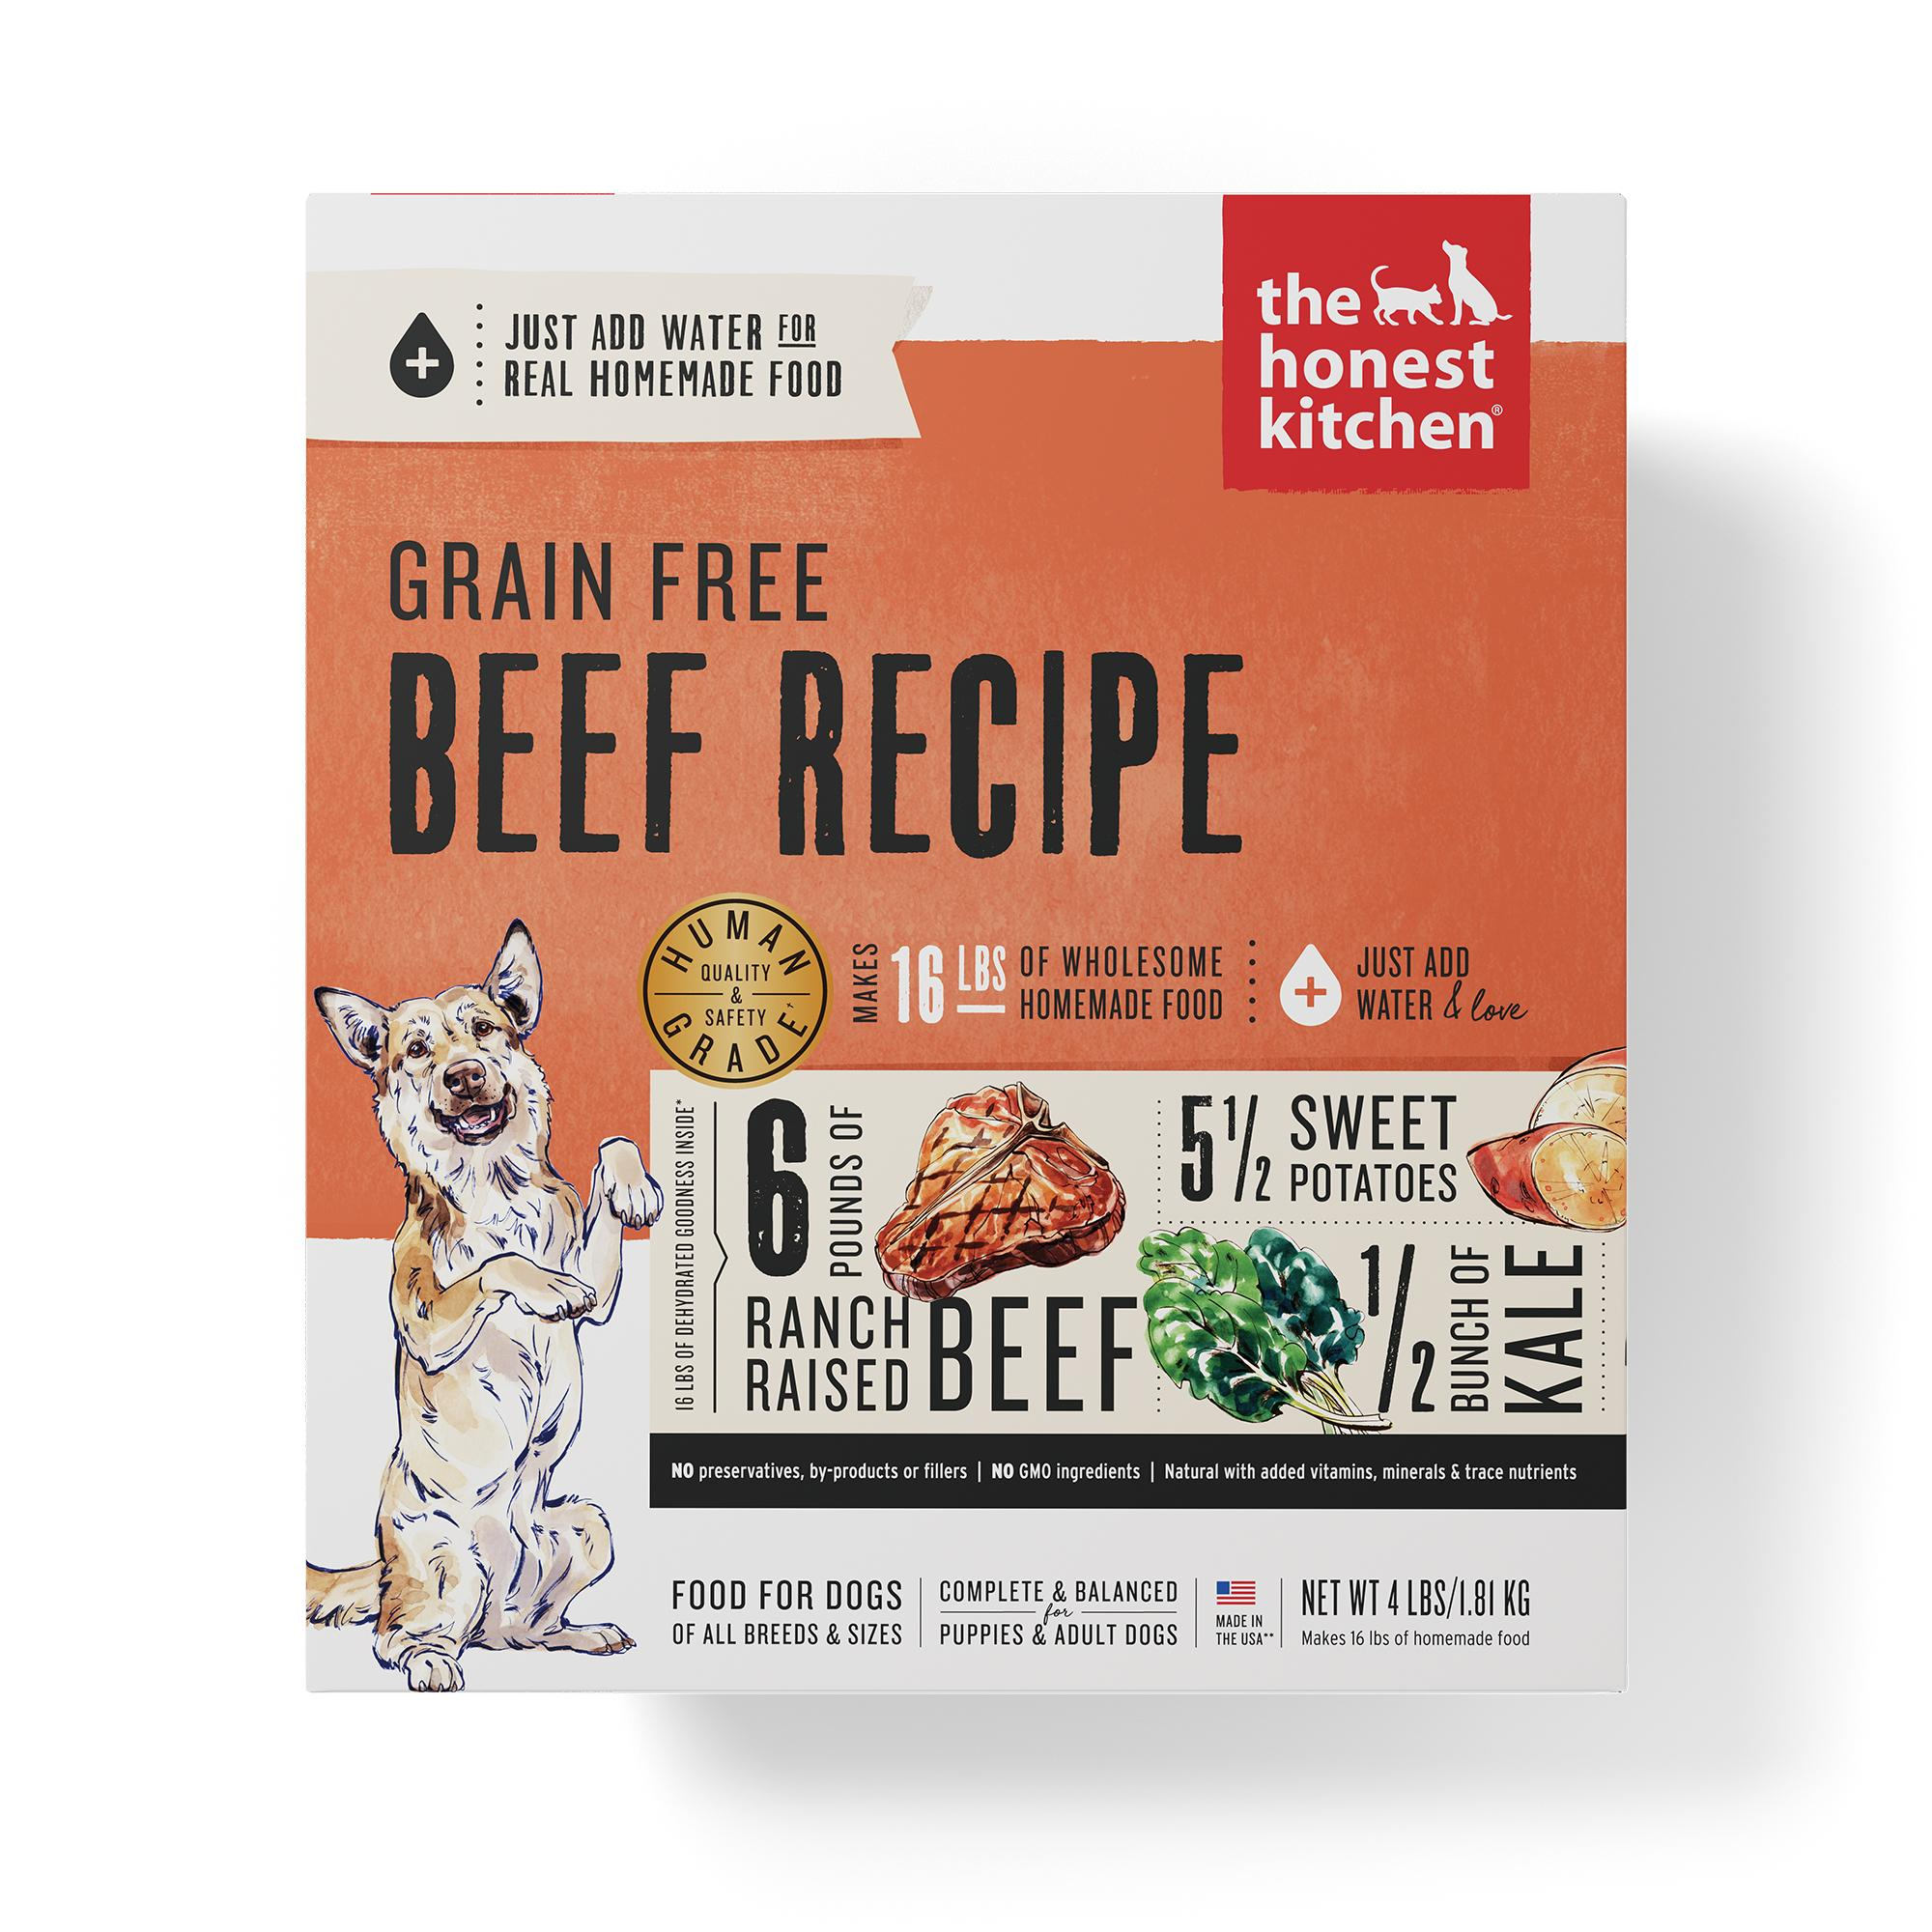 The Honest Kitchen Beef Recipe Grain-Free Dehydrated Dog Food, 4-lb box